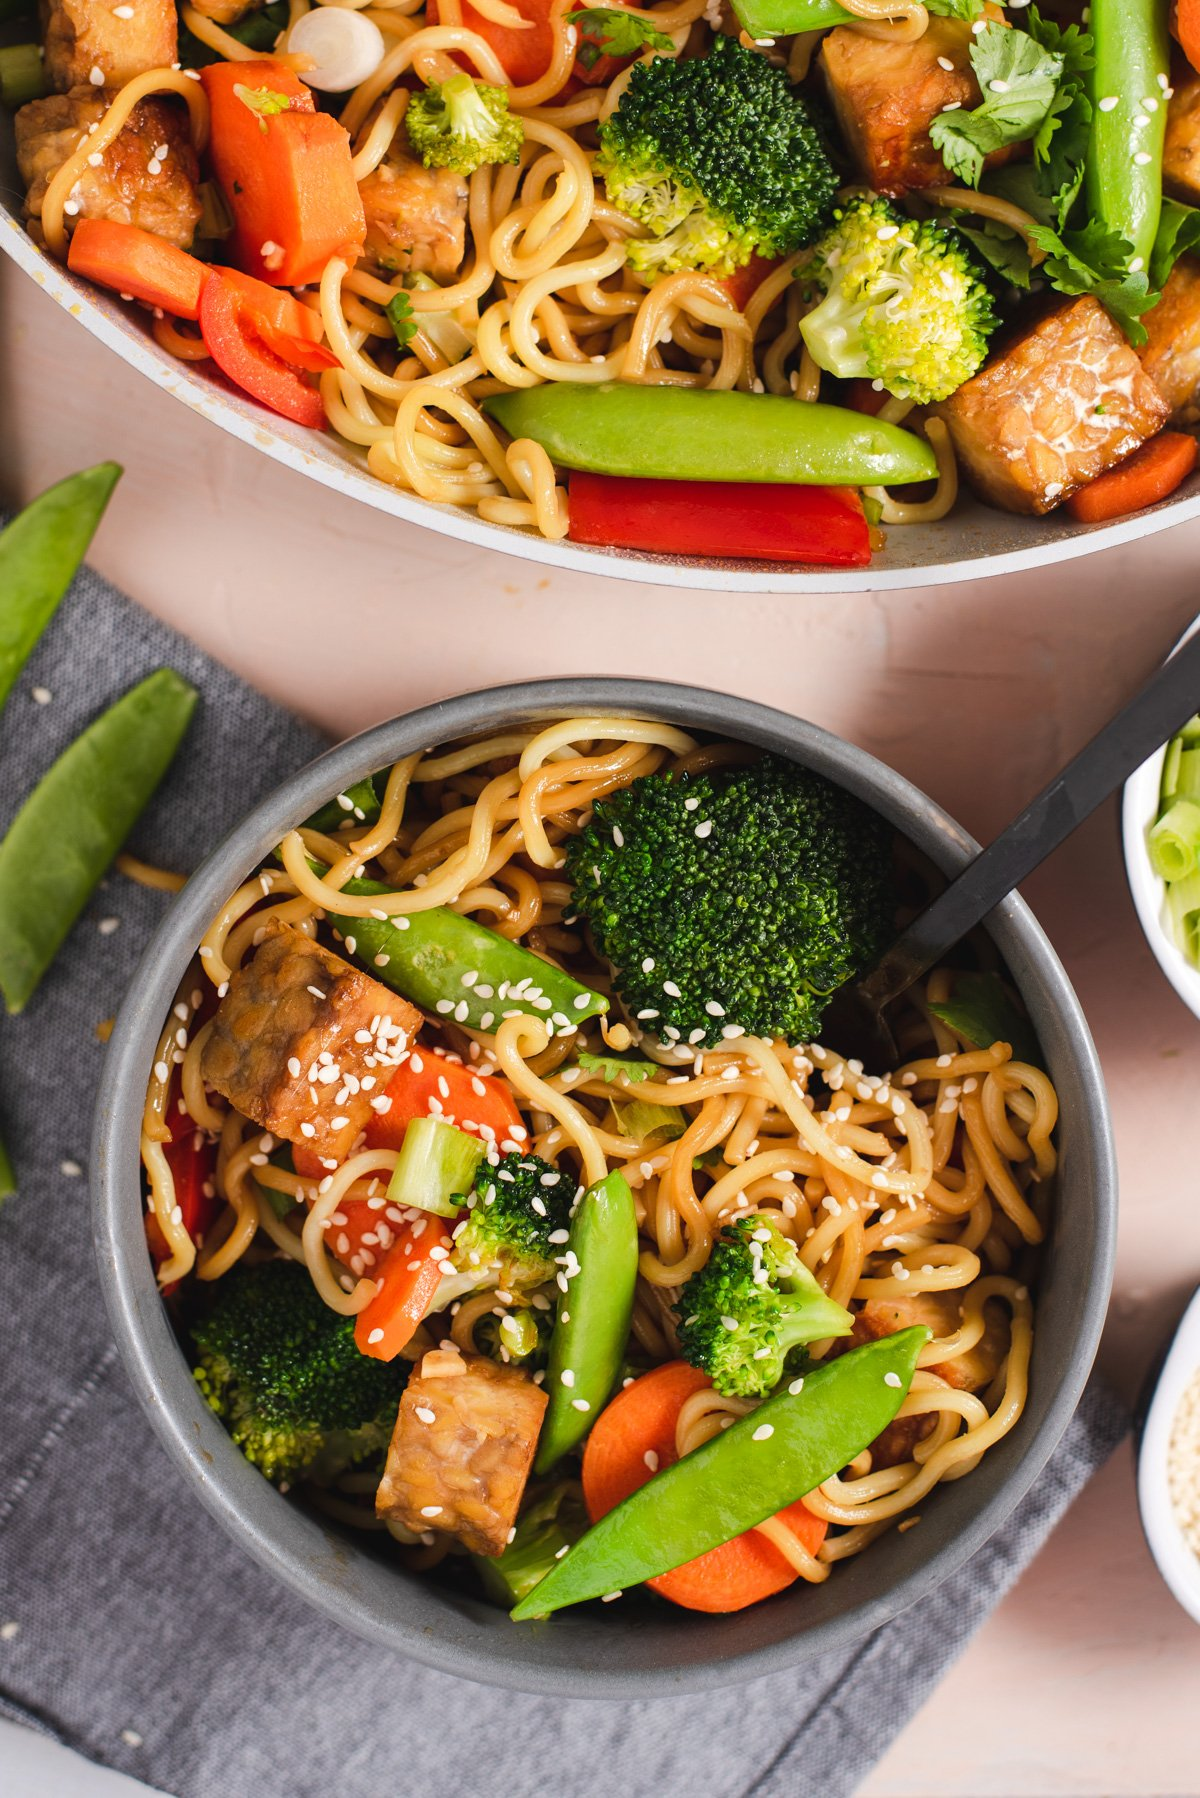 Gray bowl filled with stir fry